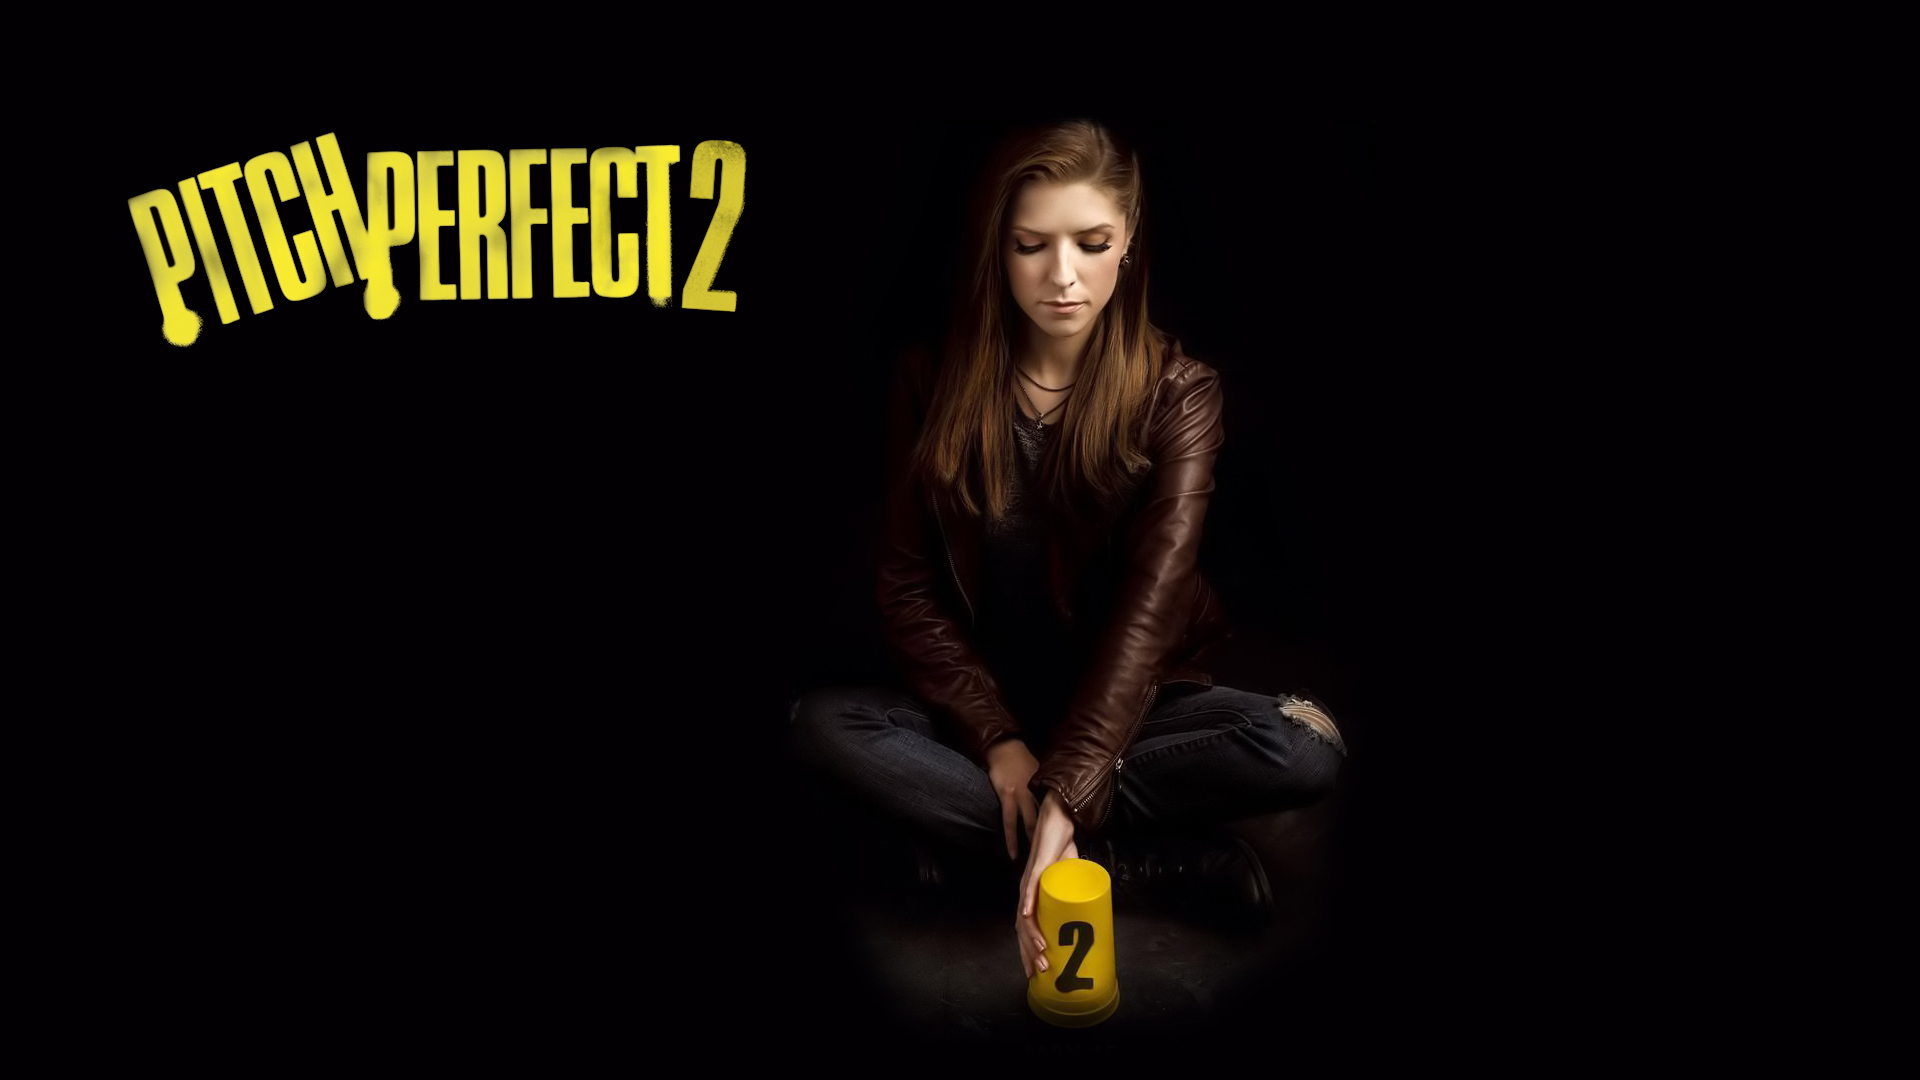 Pitch Perfect 2 wallpaper 3Pitch Perfect 2